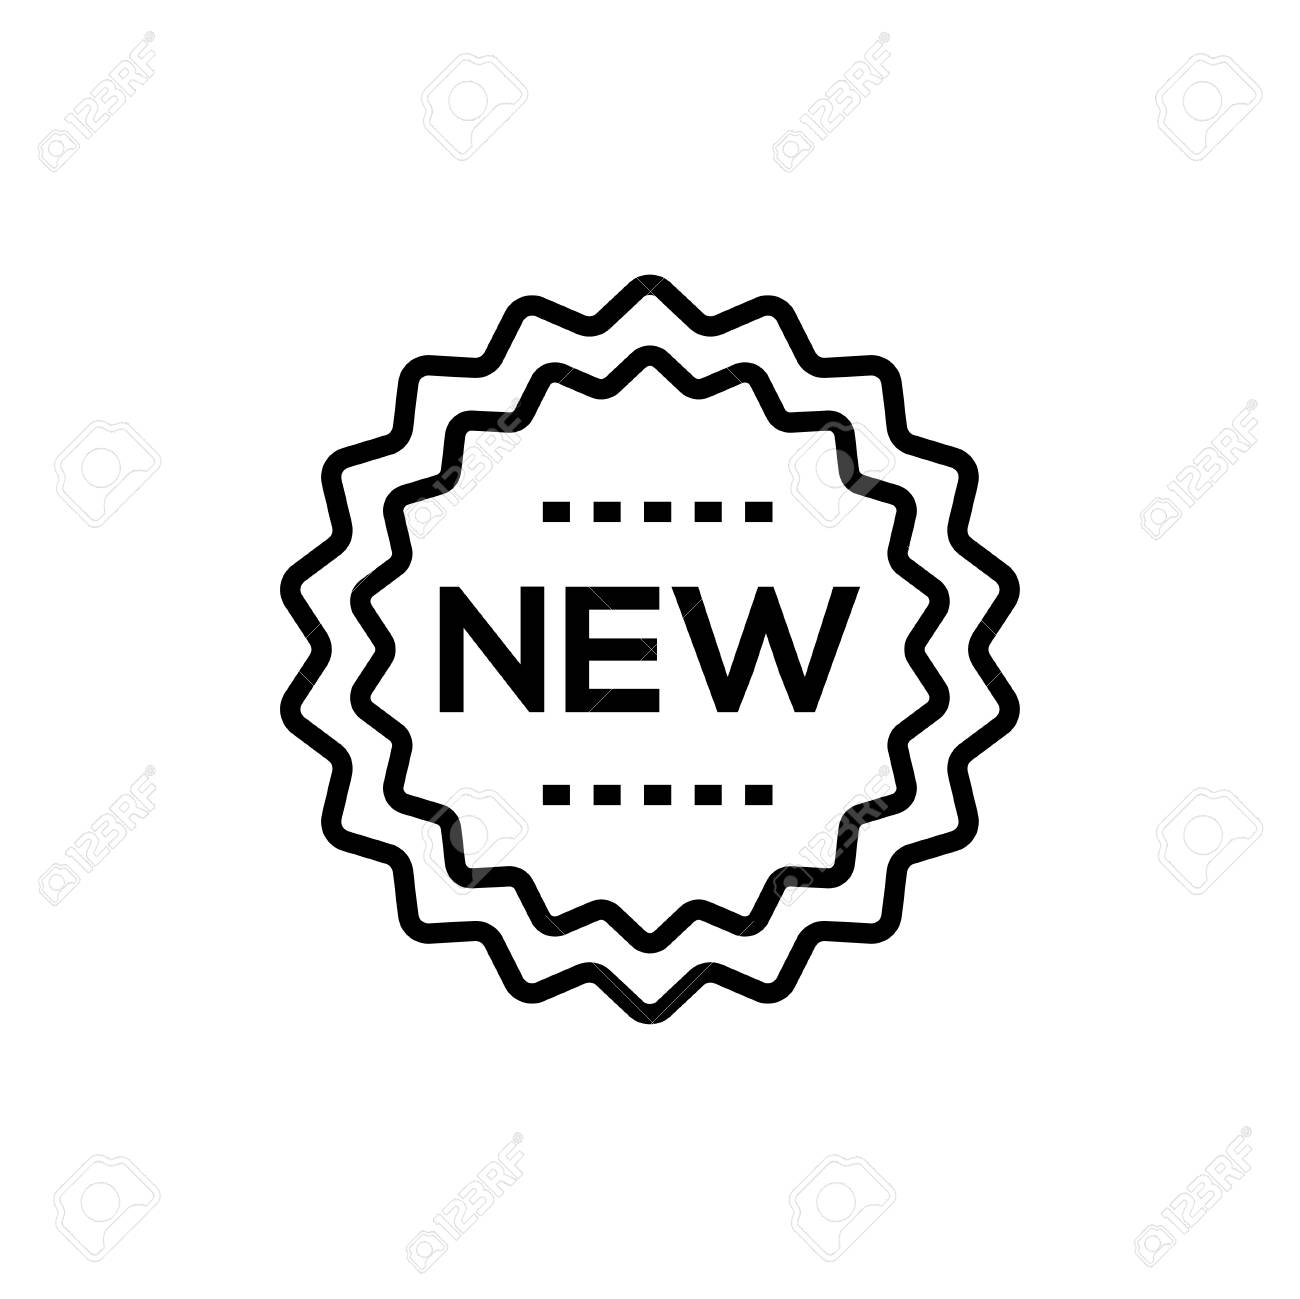 New sign - line design single isolated icon - 101035401